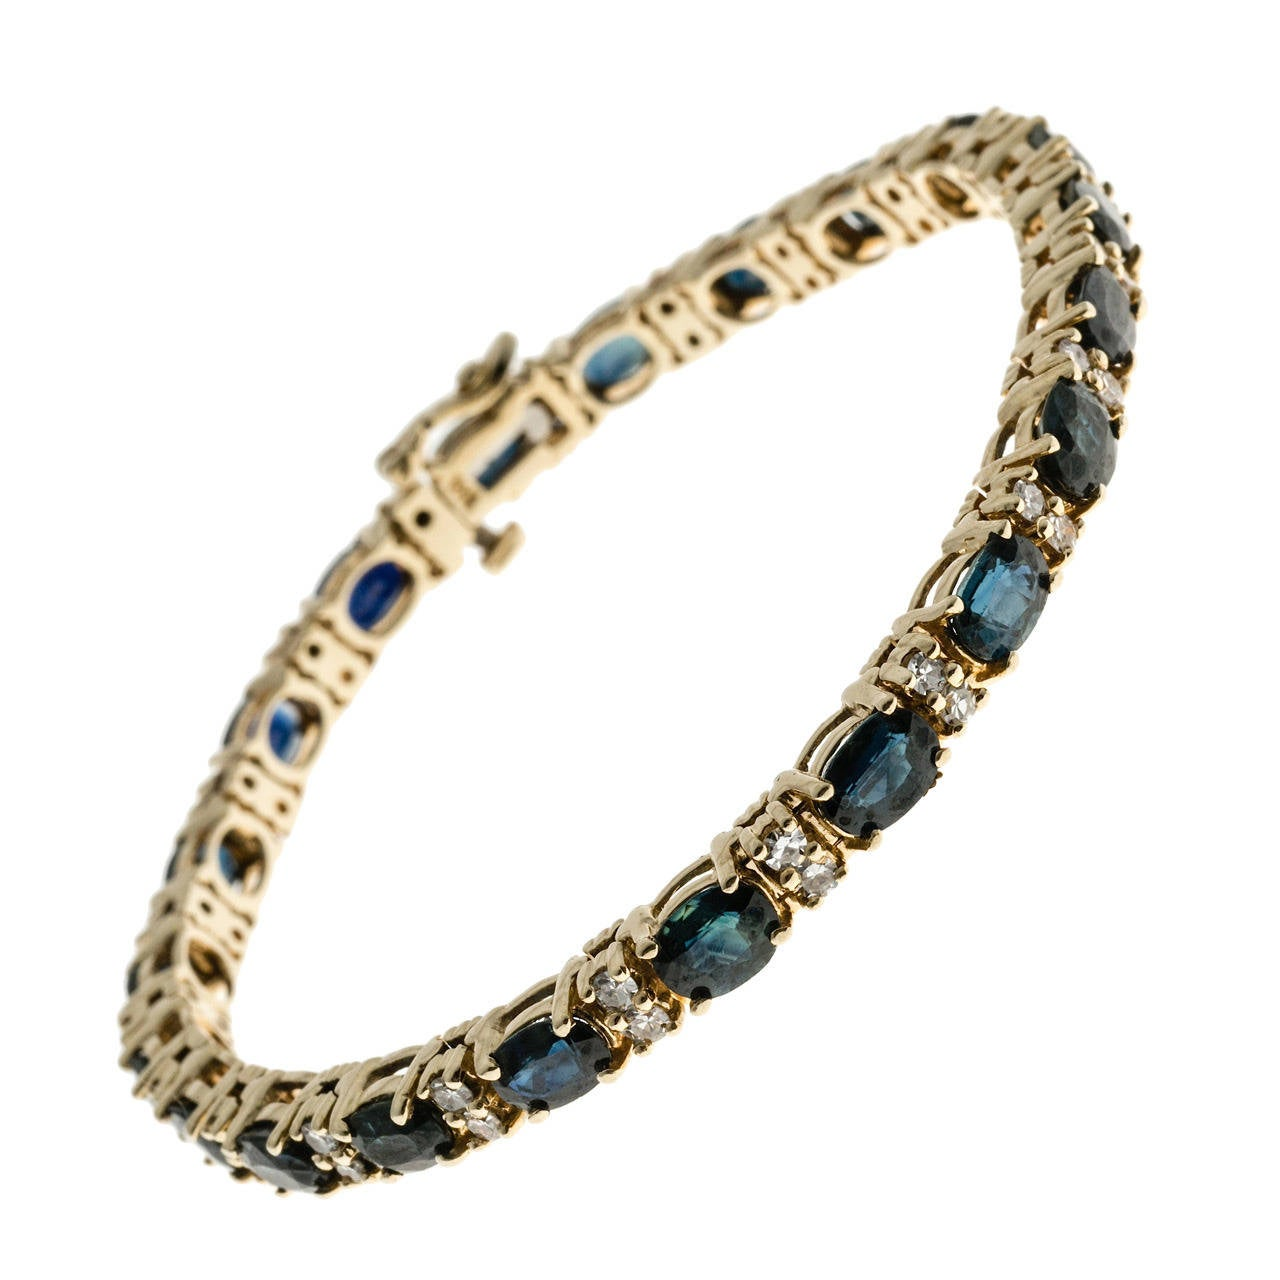 Oval Royal Sapphire Diamond Gold Hinged Link Bracelet For Sale